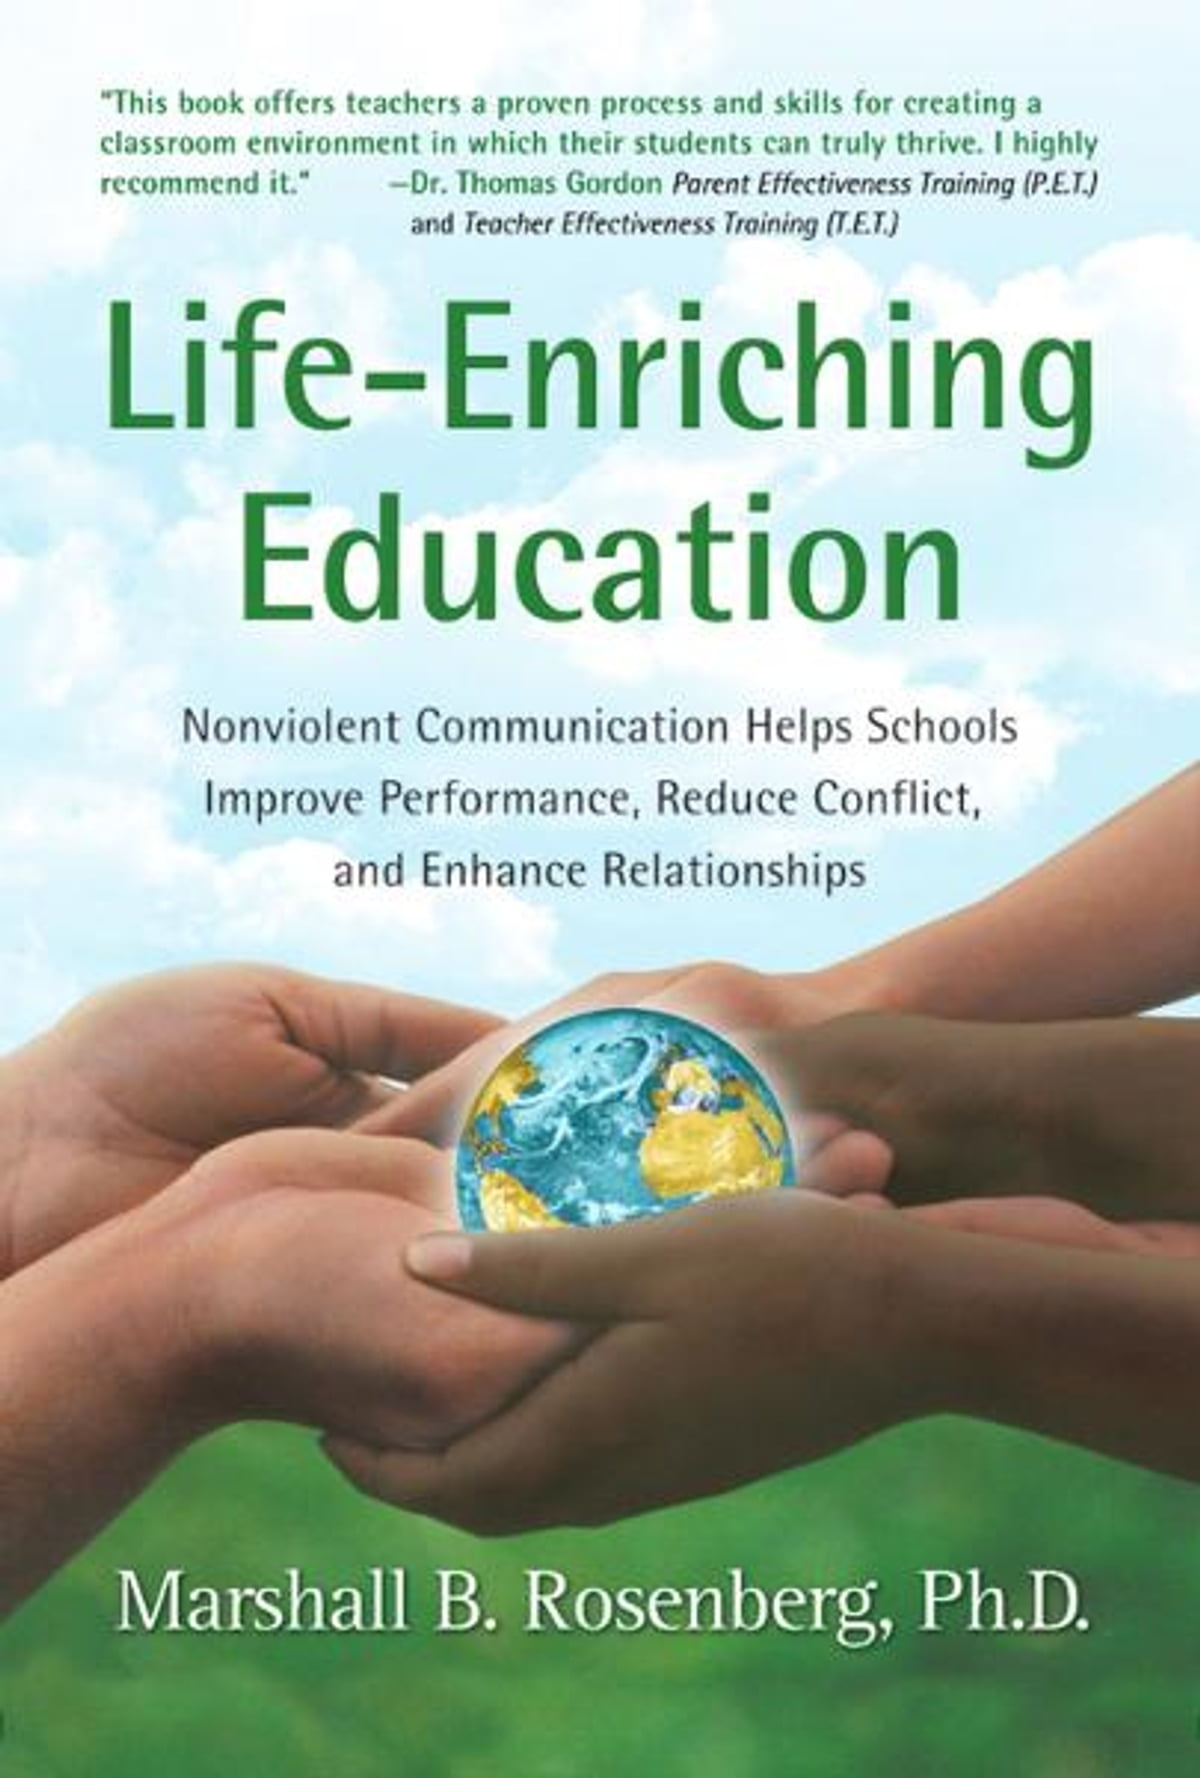 Life-Enriching Education: Nonviolent Communication Helps Schools Improve  Performance, Reduce Conflict, and Enhance Relationships eBook by Marshall  B. ...